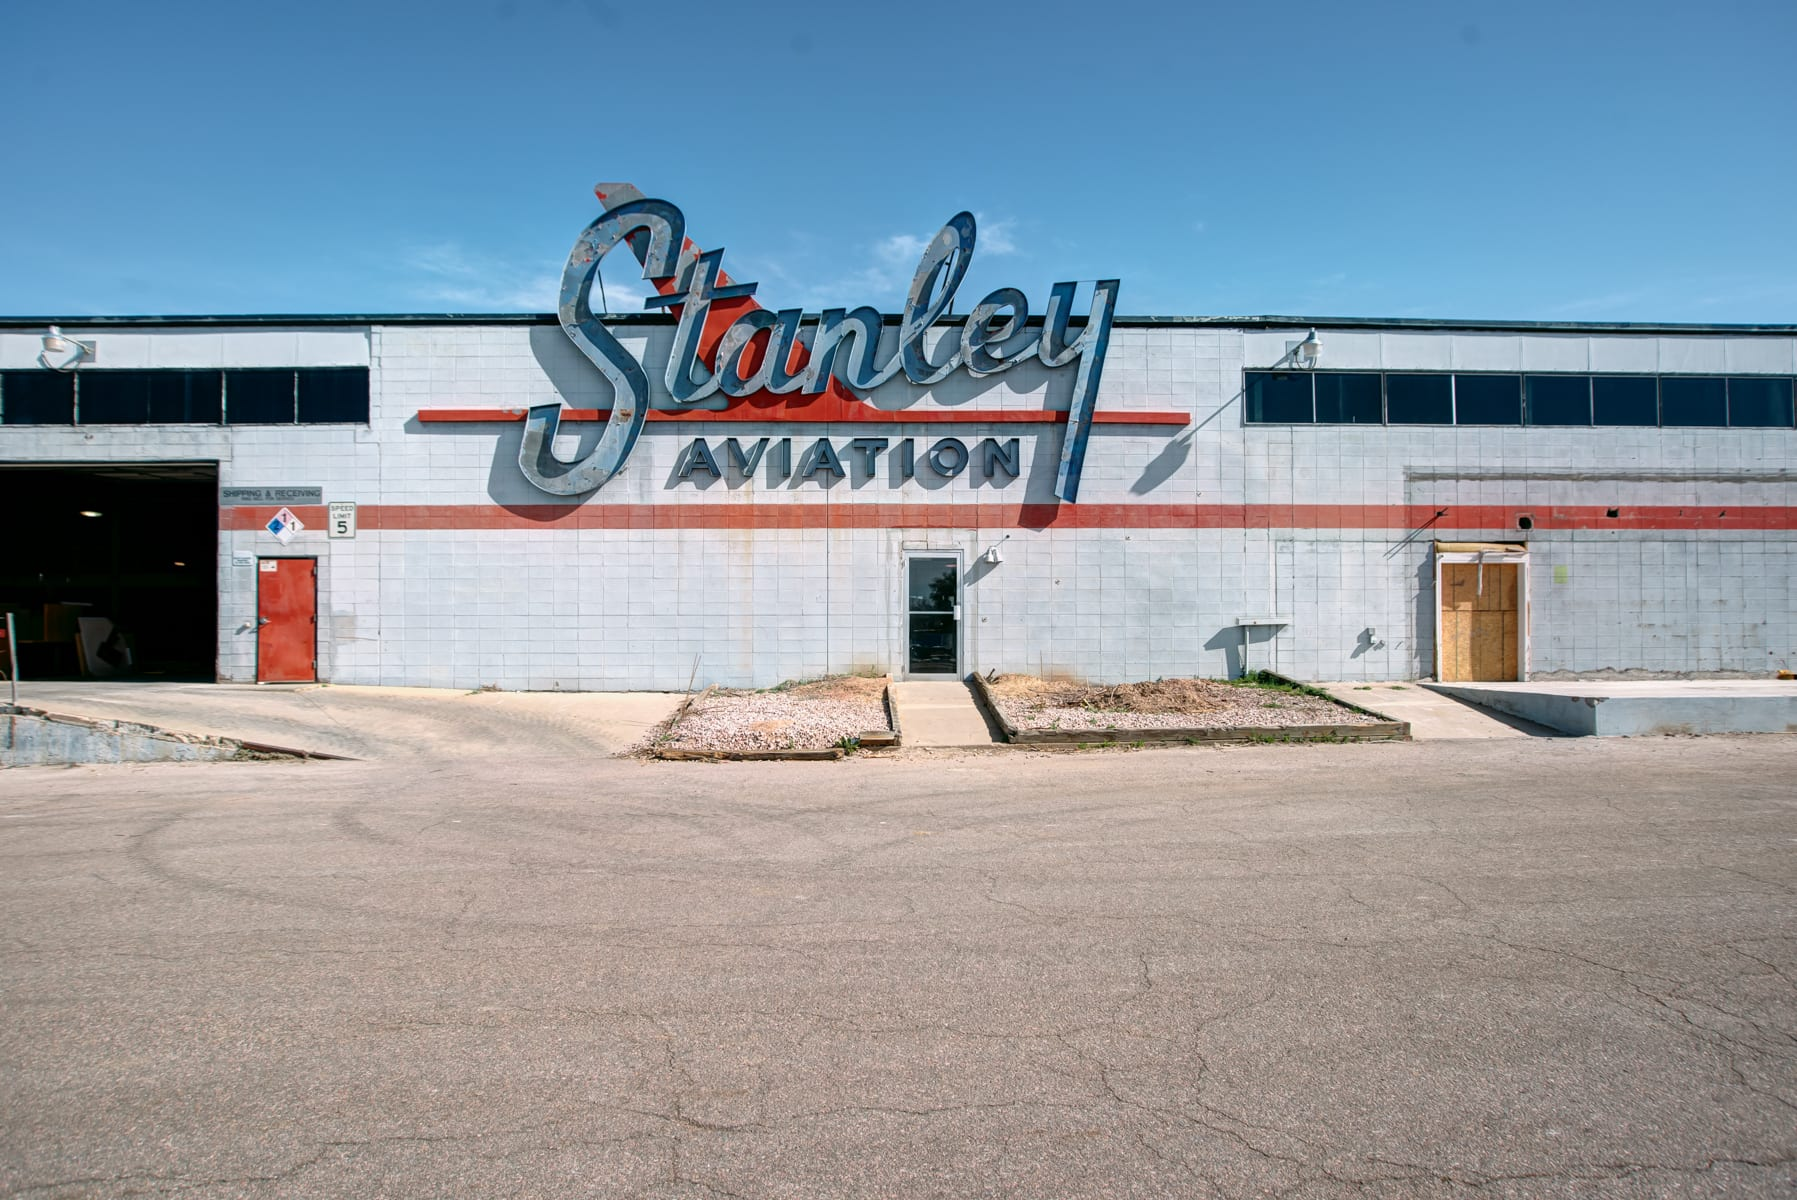 Stanley Marketplace